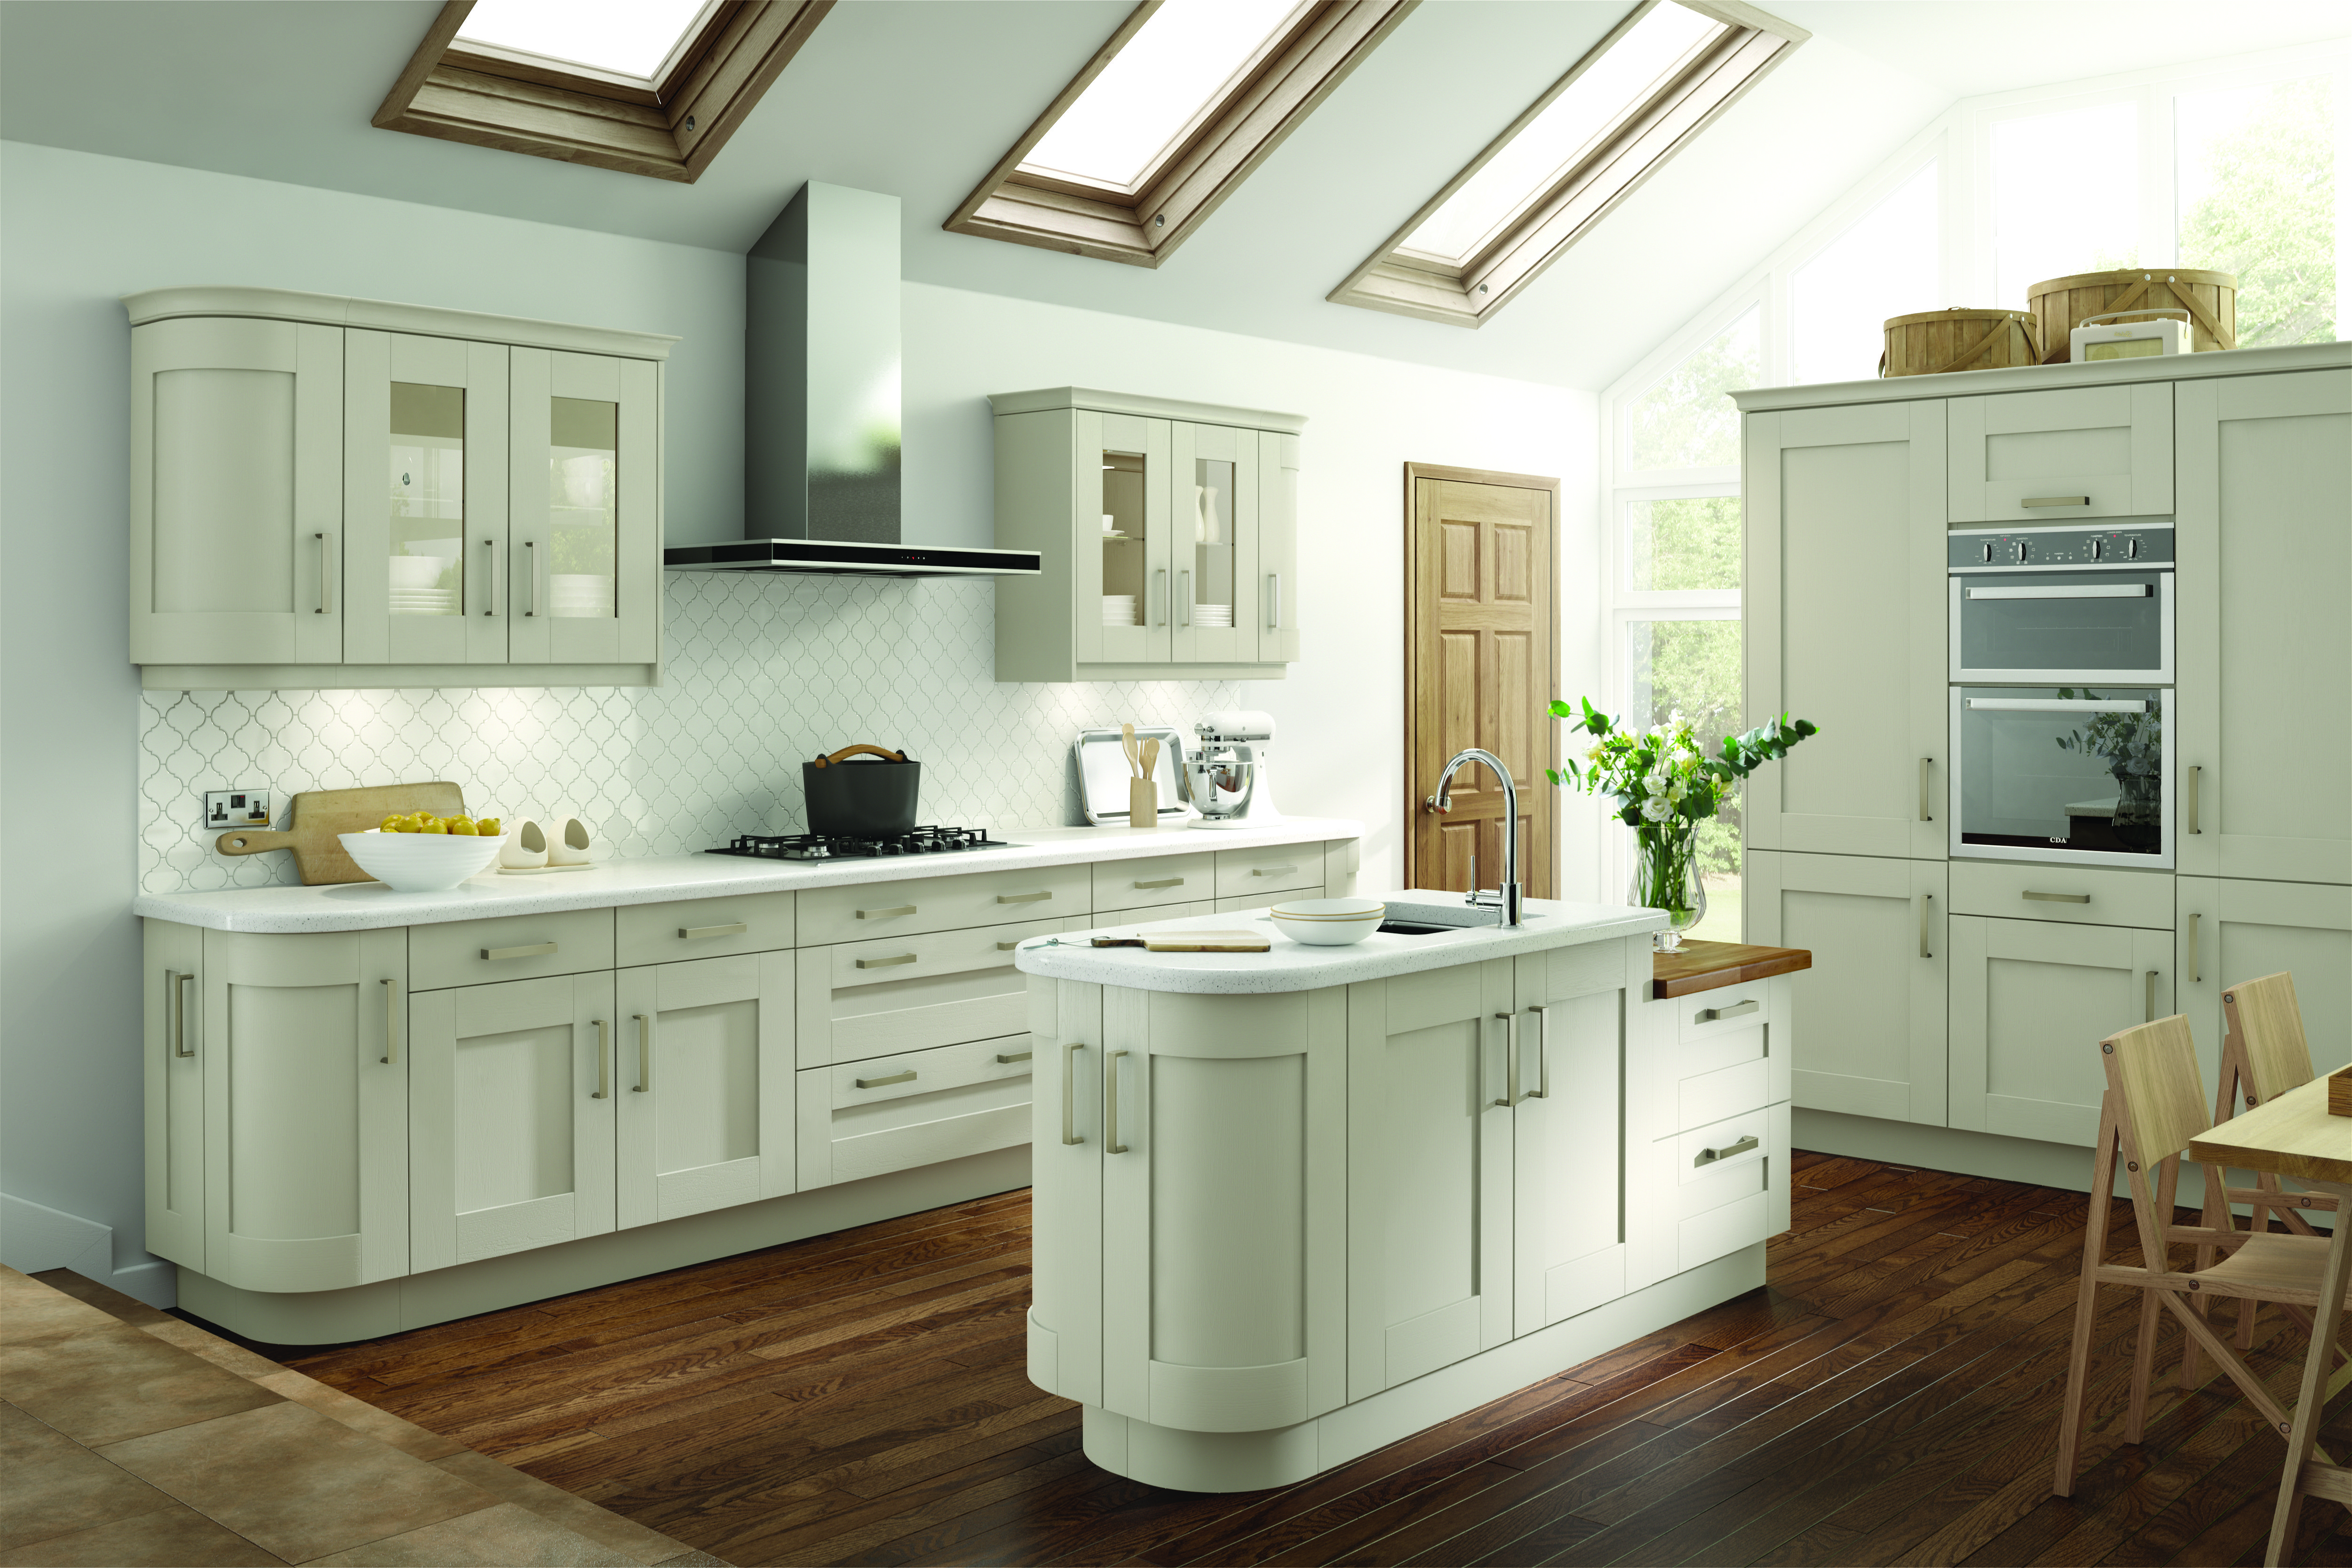 Arlington Ivory painted kitchen (With images) Kitchen design